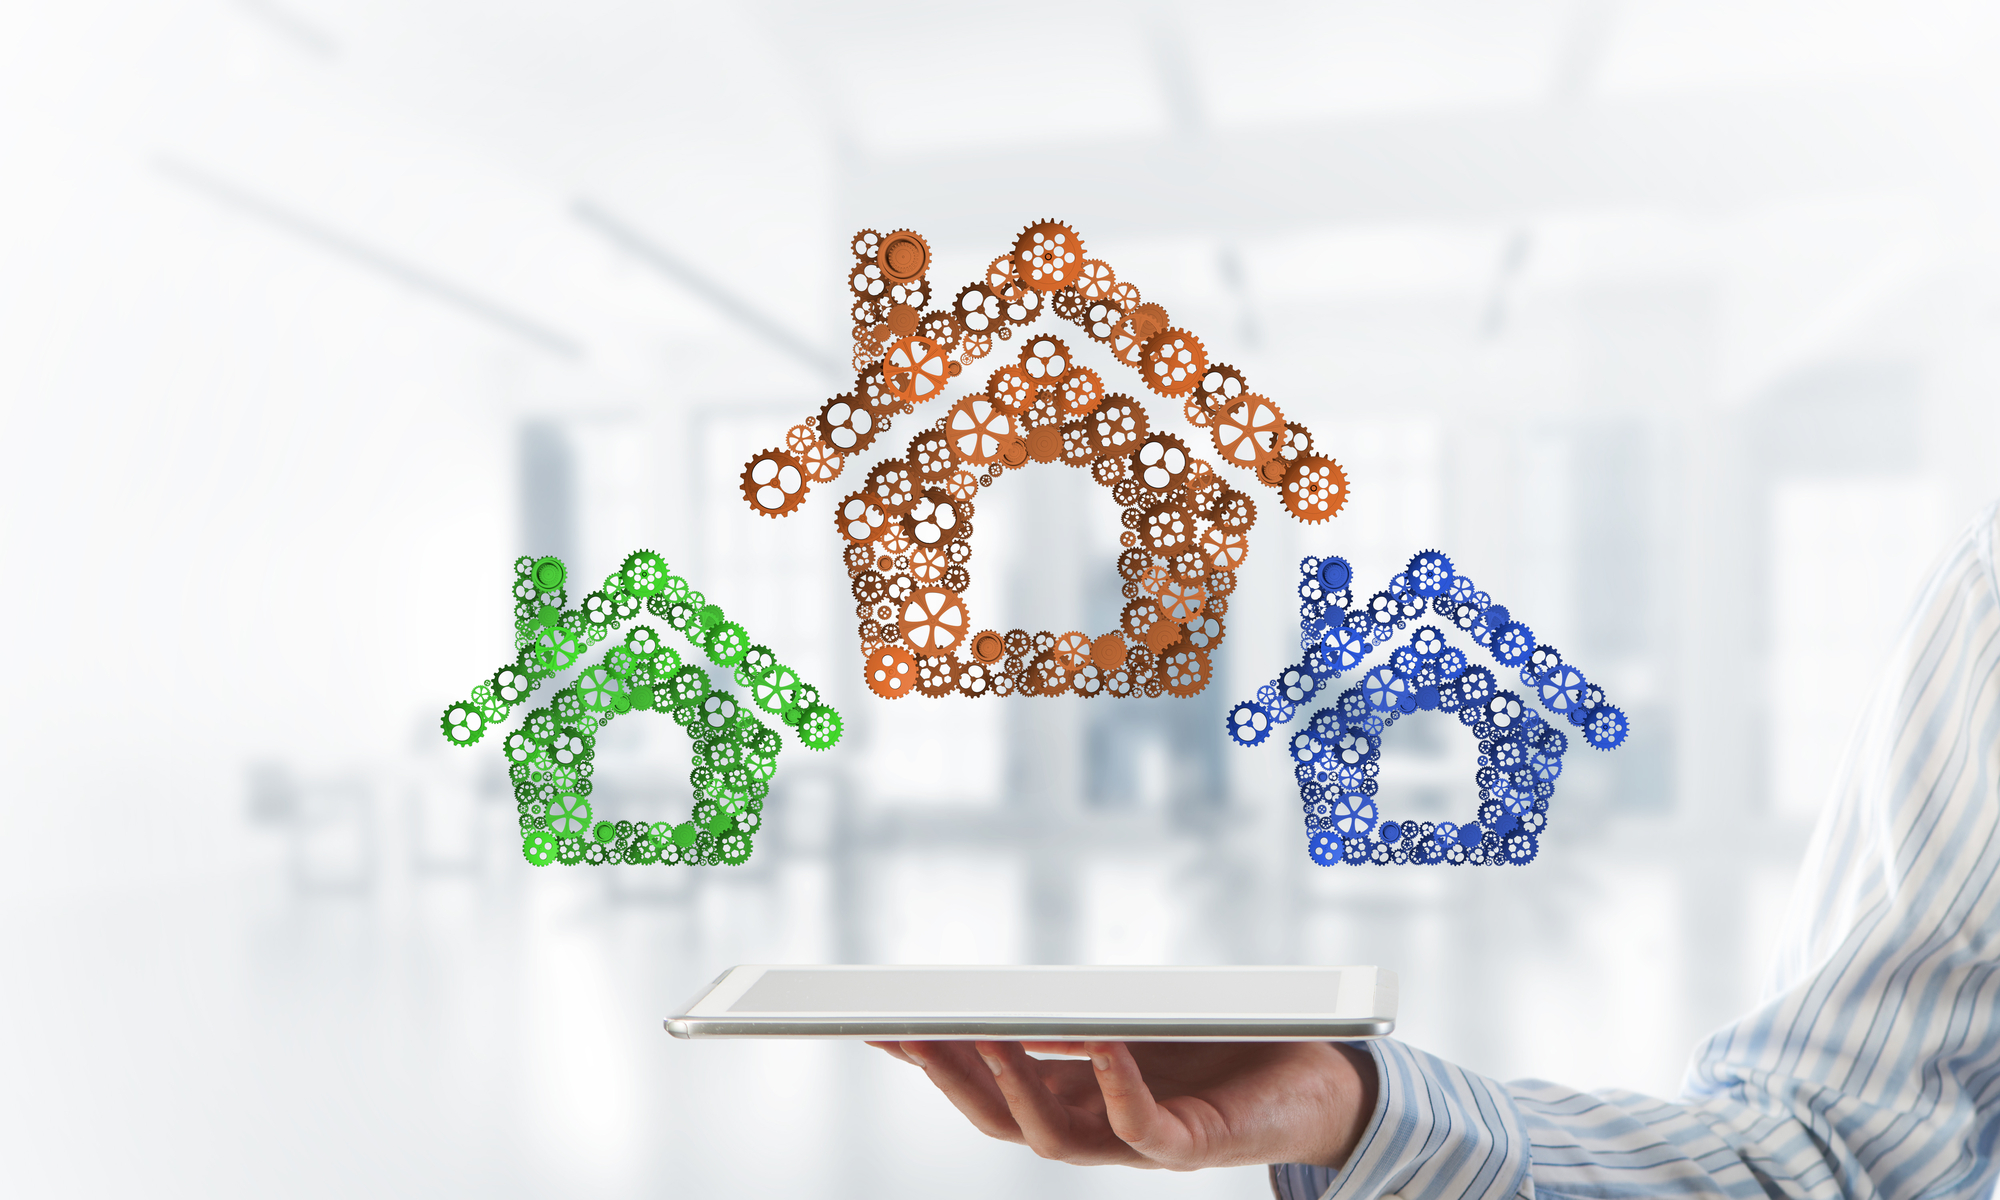 Real estate or construction idea presented by home icon on tablet pc